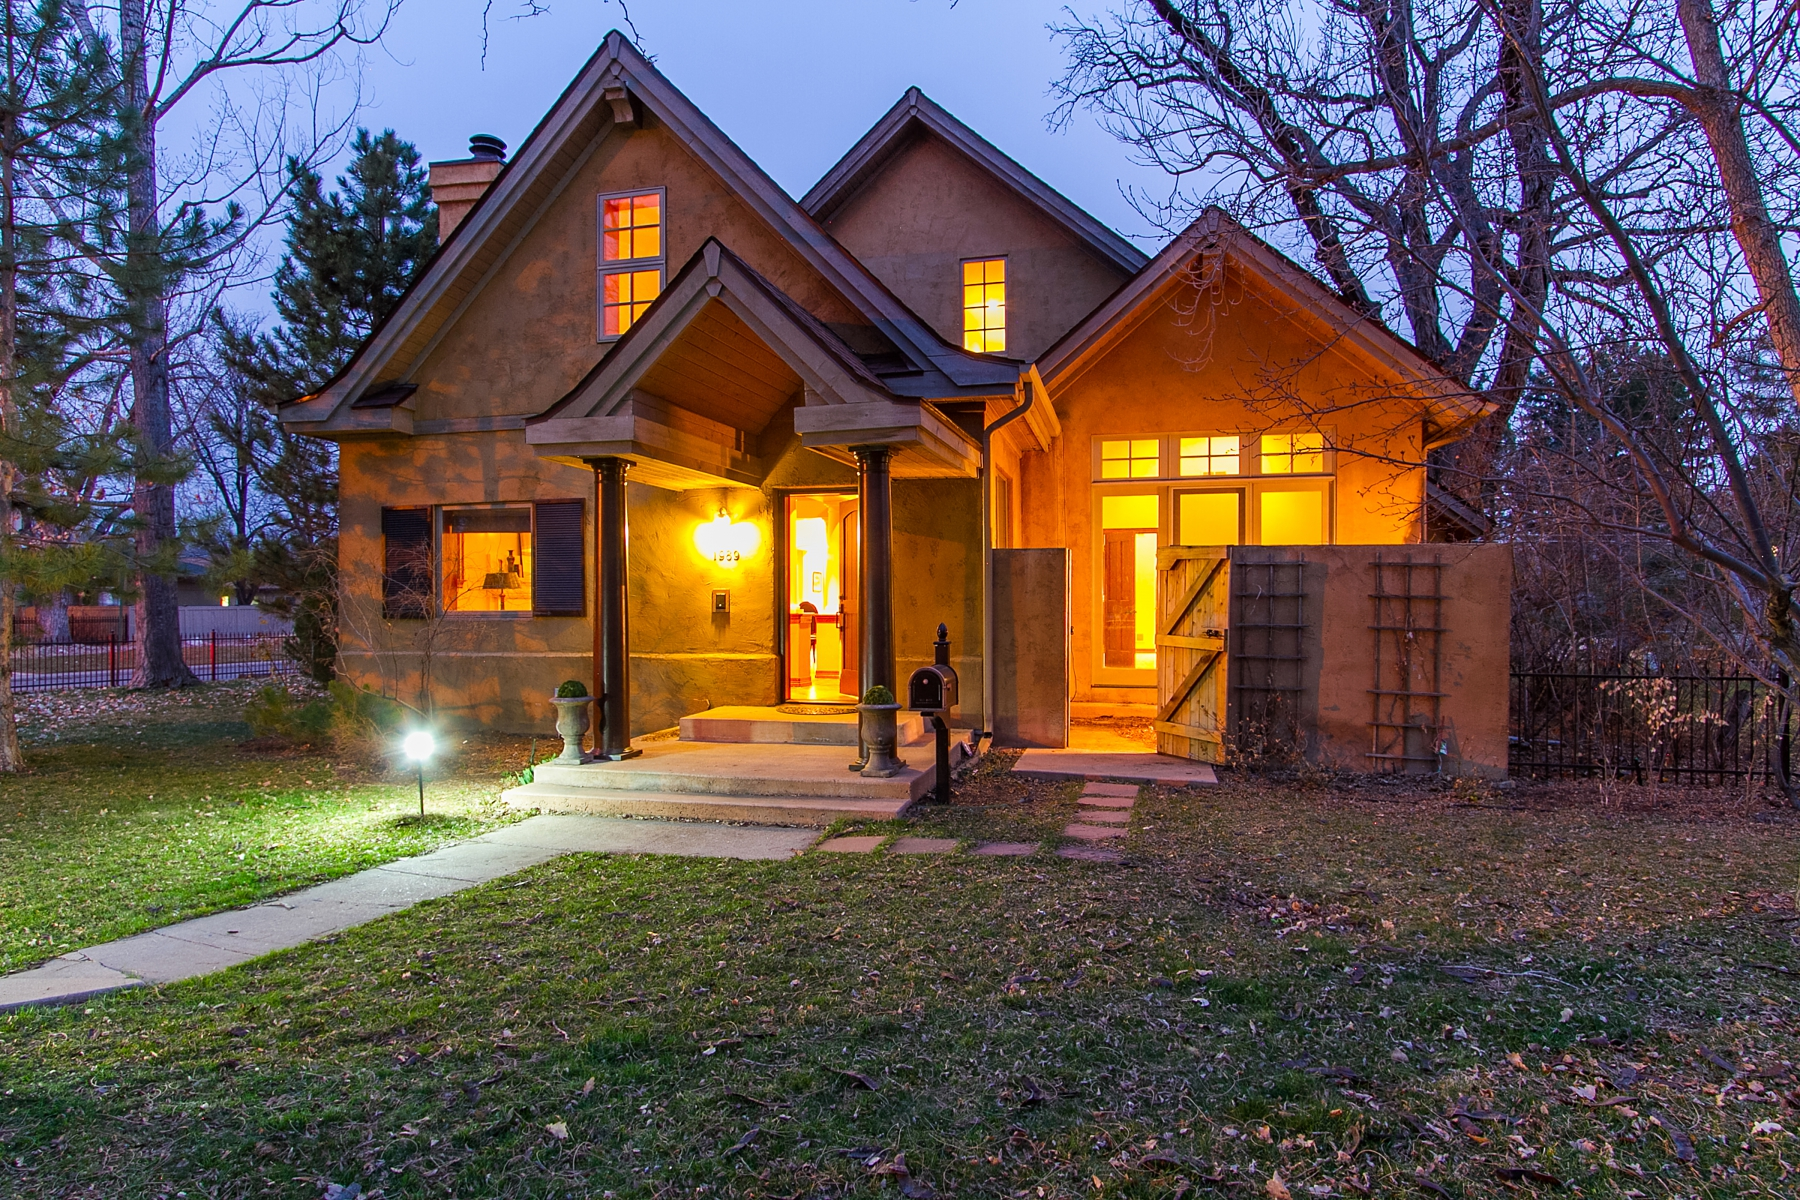 Single Family Home for Sale at Charming Urban Cottage 1989 South Saint Paul Street Denver, Colorado 80210 United States